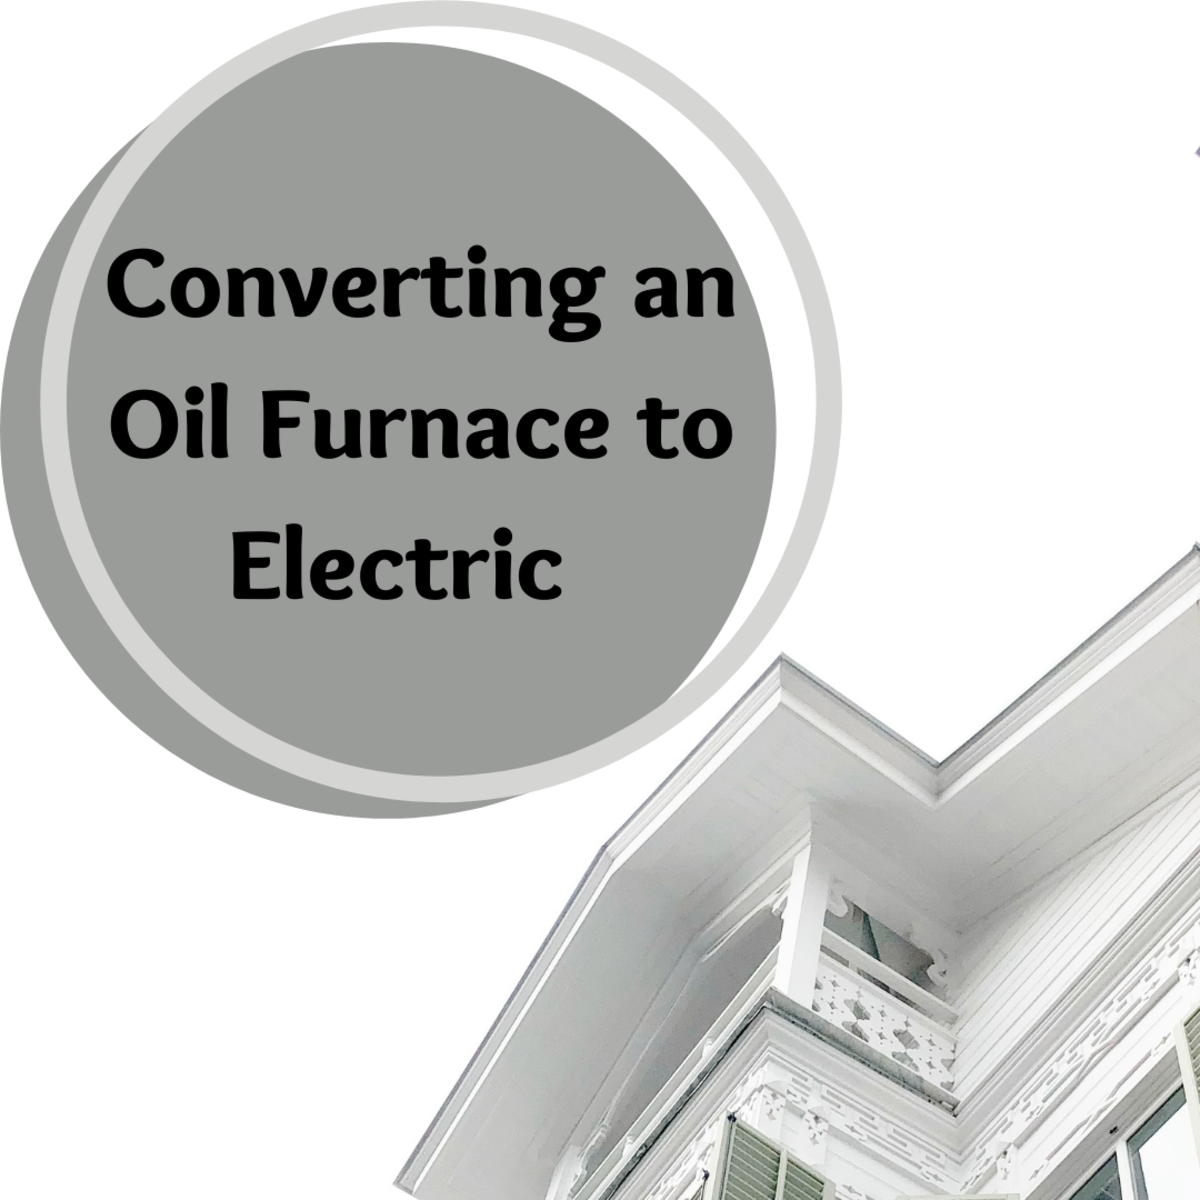 Converting From Oil to Electric Heat